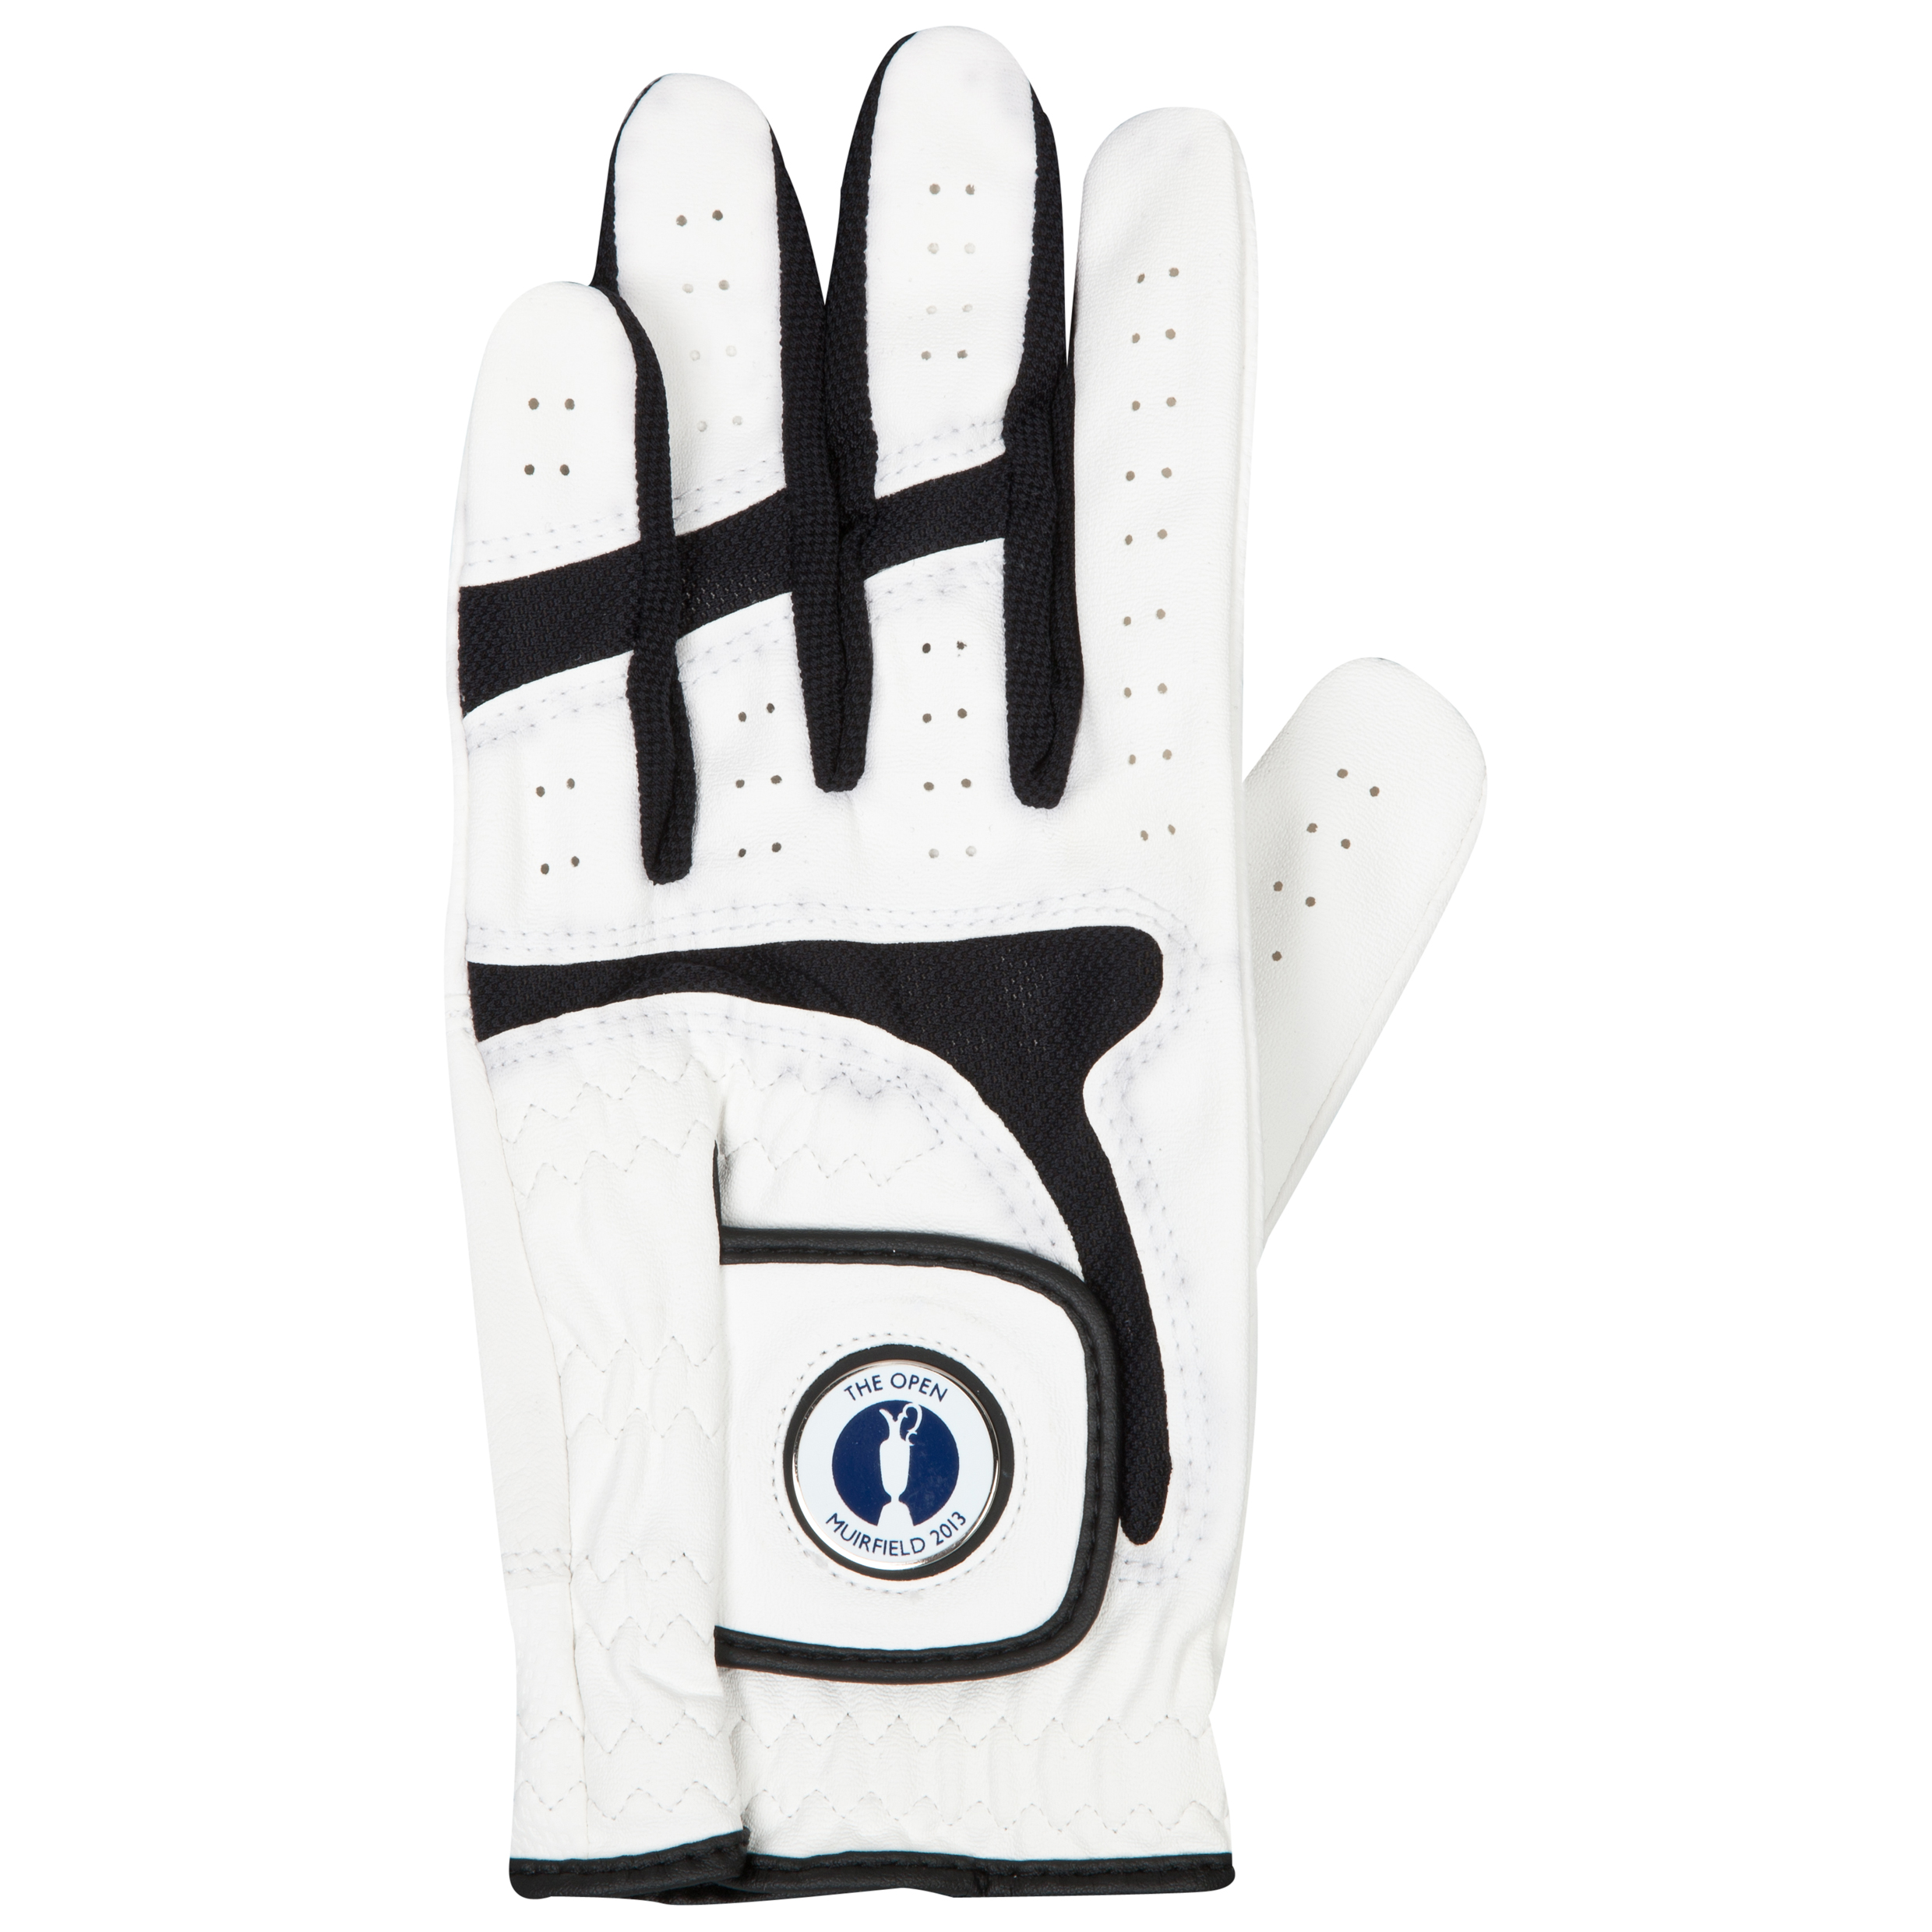 The Open Championship Championship 2013 Muirfield Glove Blue